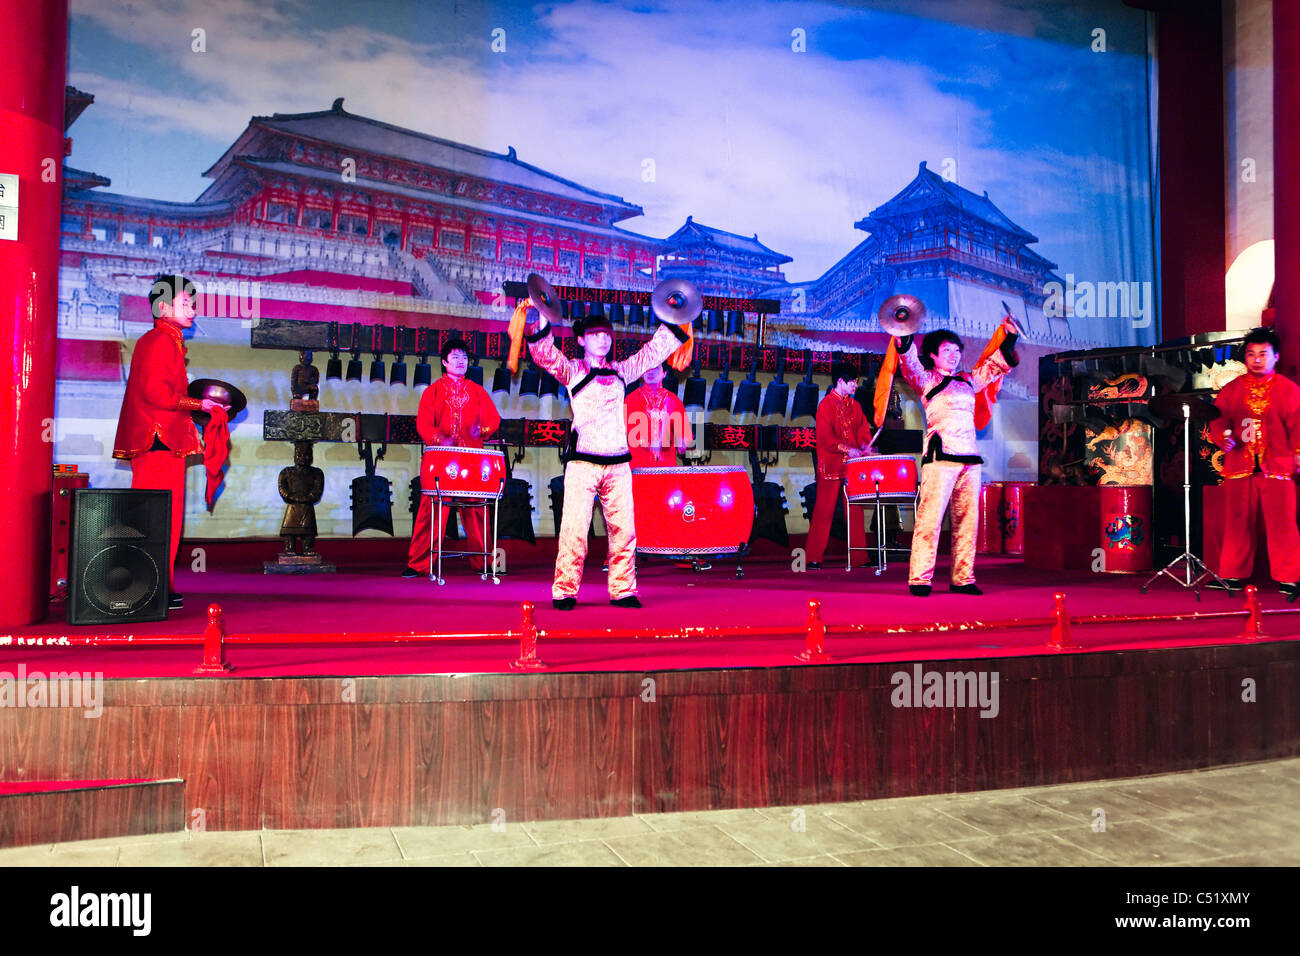 Group Drumming Performance in Drum Tower of Xi'an, China - Stock Image